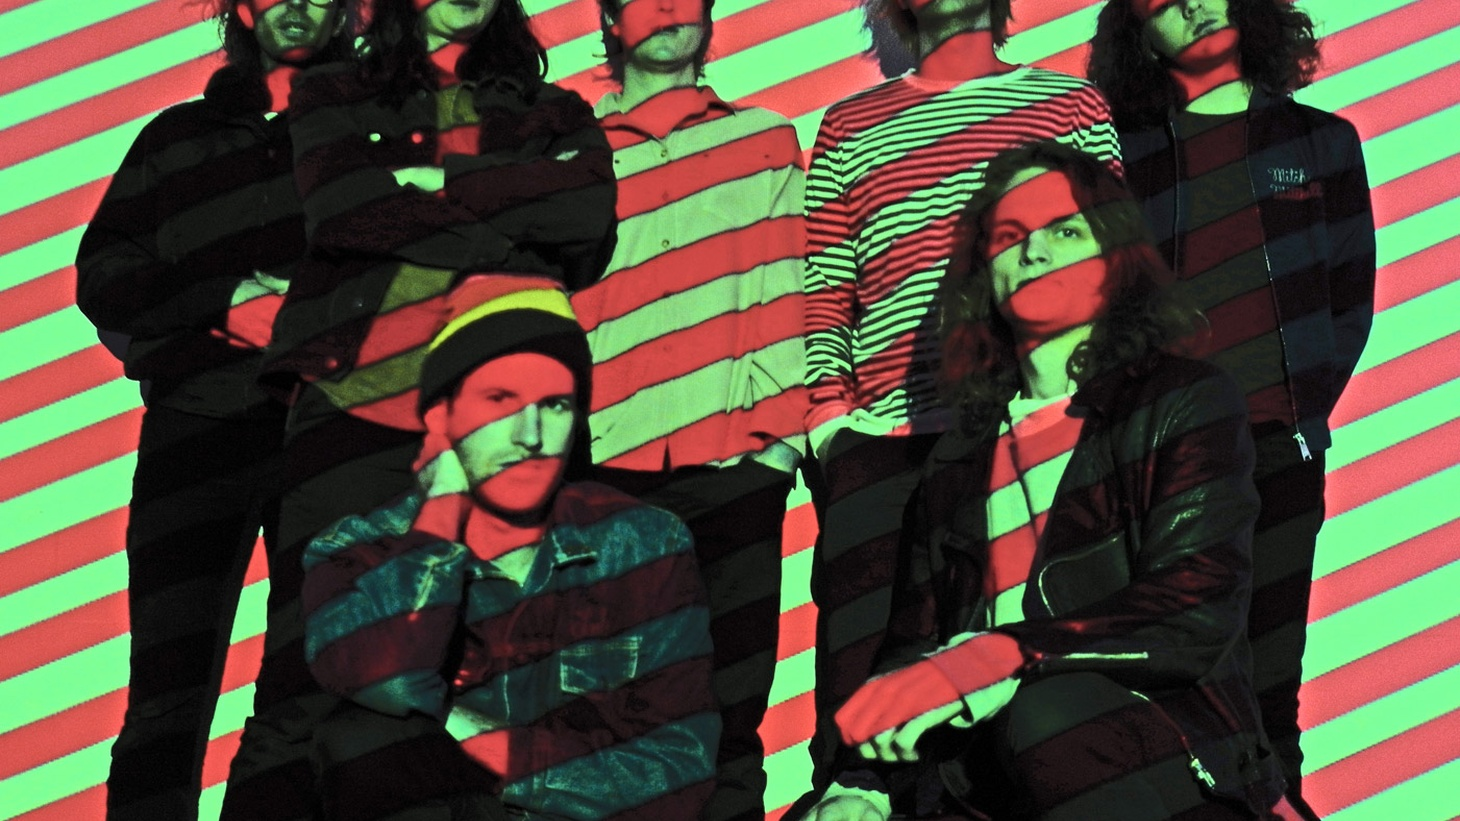 Inspired by a myriad of music theory from around the world, King Gizzard & the Lizard Wizard drives deep into all sorts of trance inducing jams.